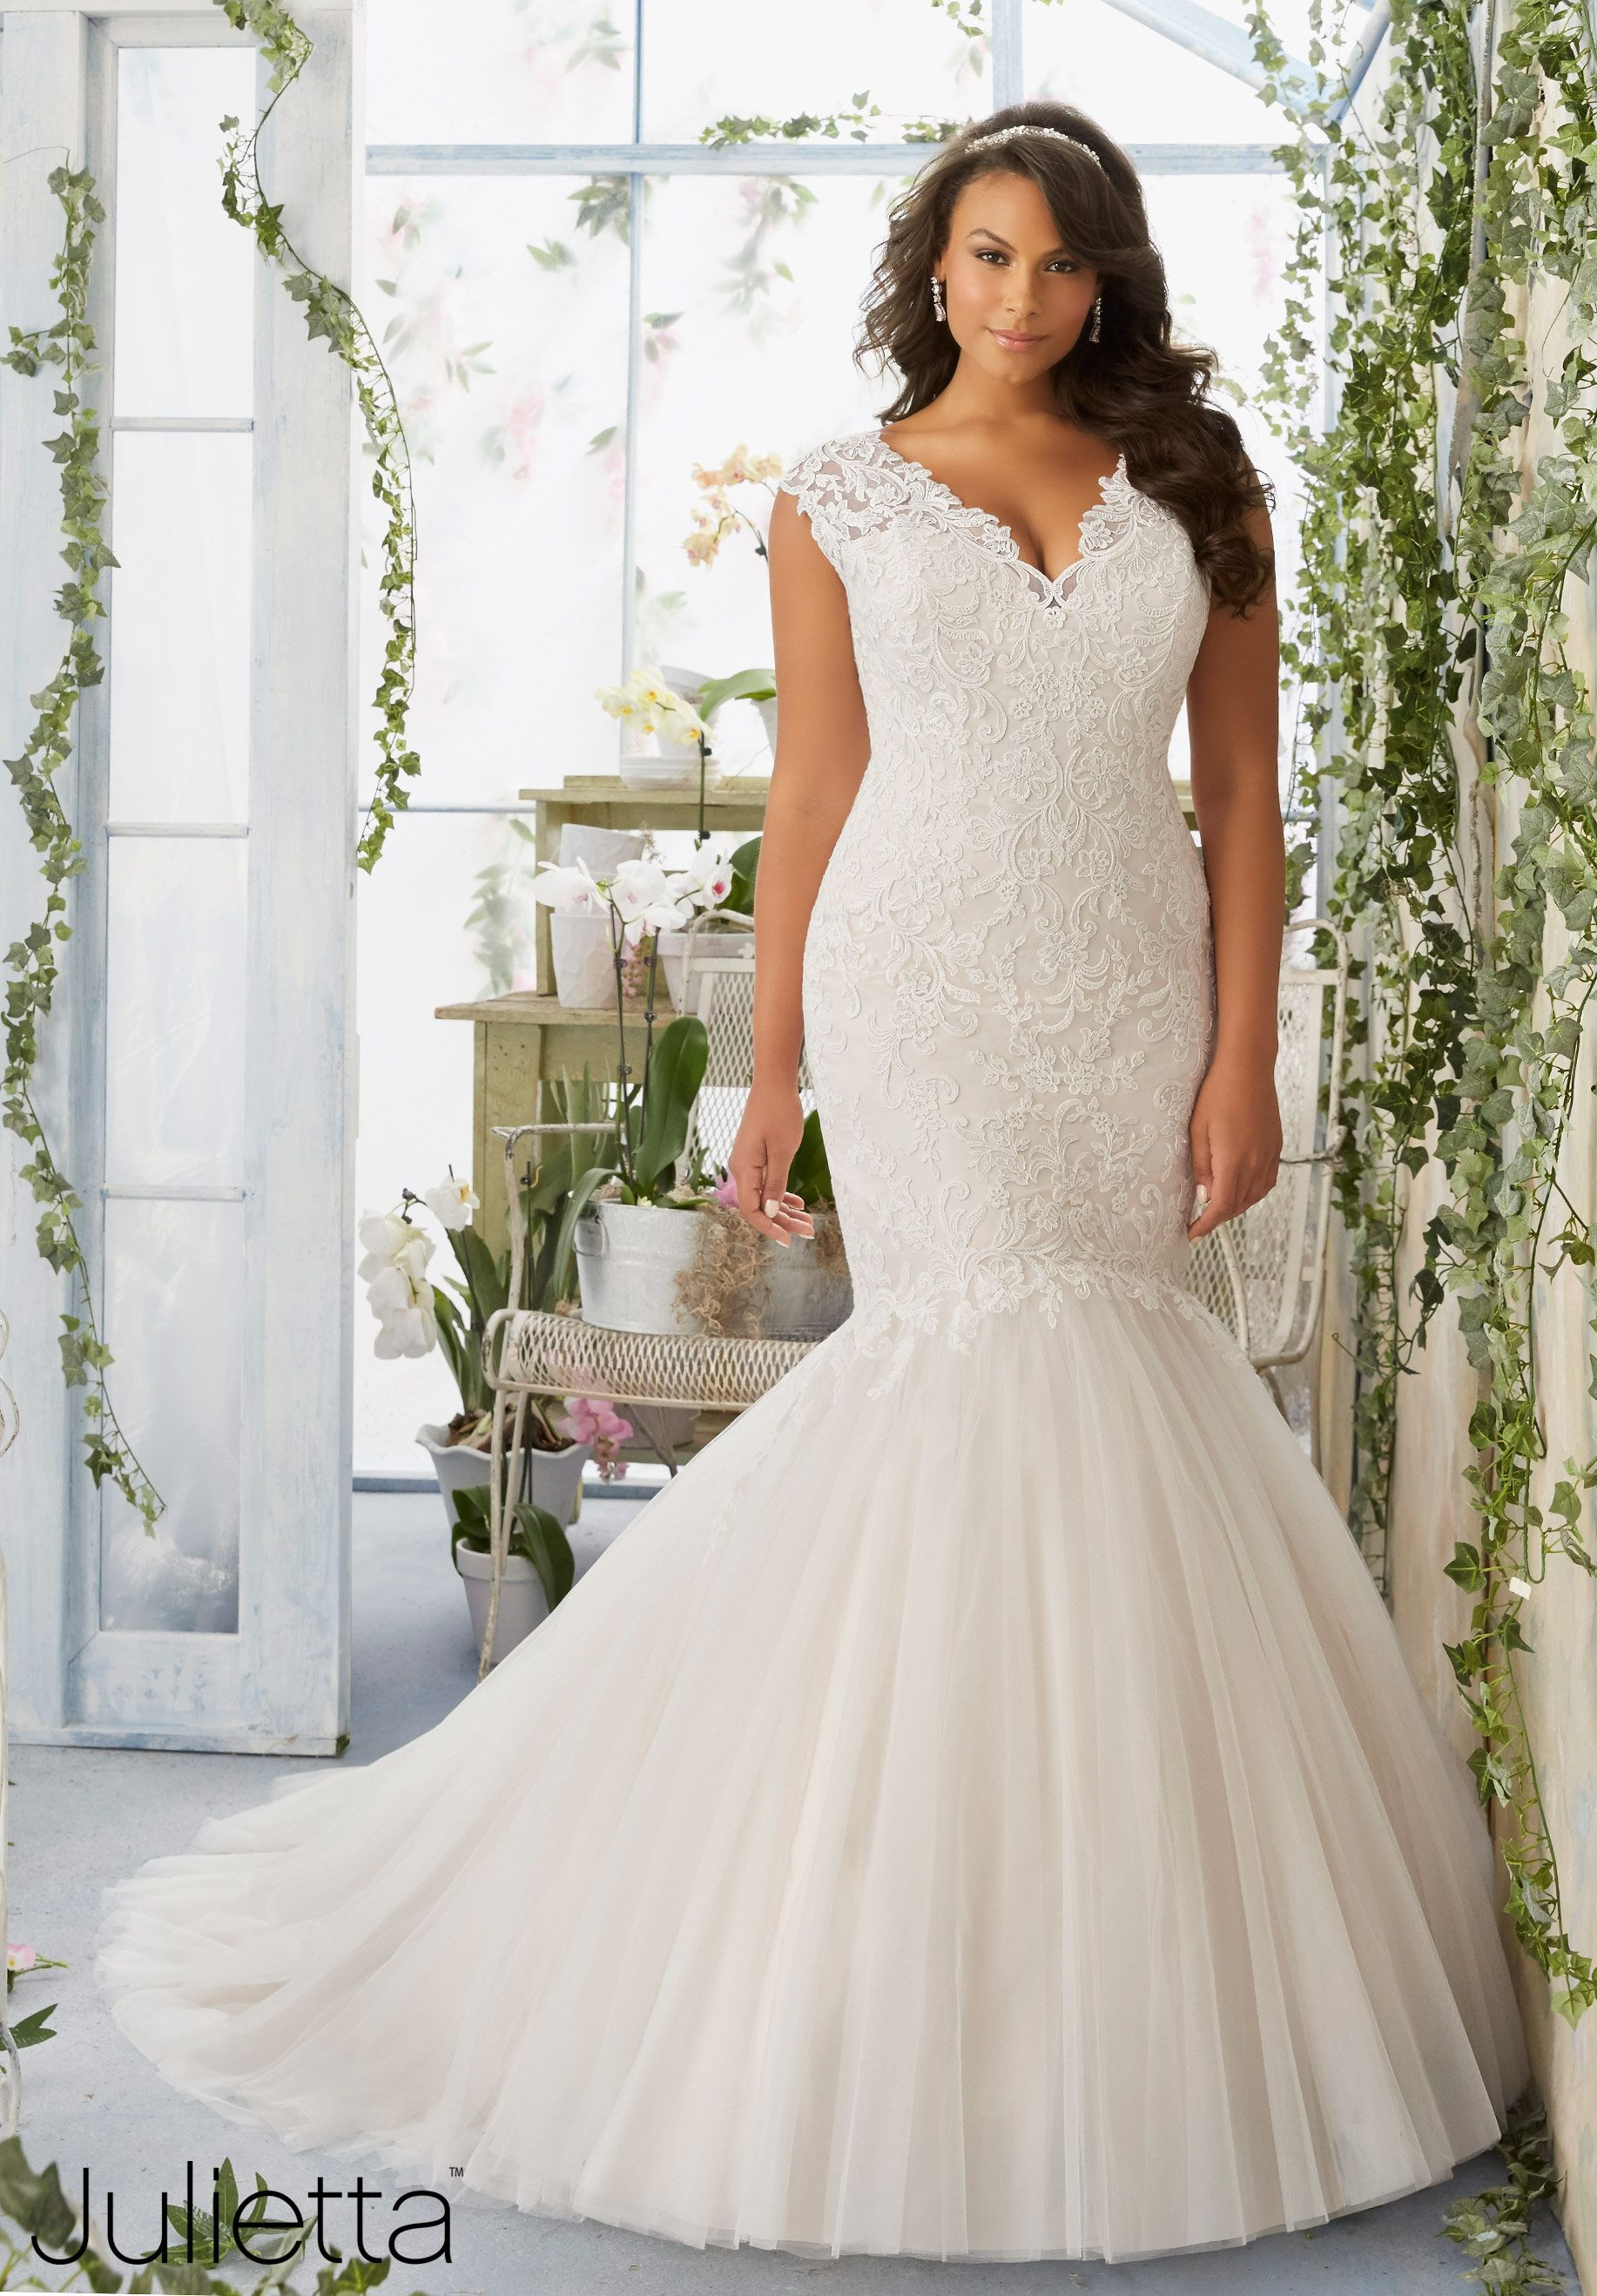 7d08efcaad8f {Plus Size Wedding Gown of the Day} New Julietta Collection by Mori Lee |  Pretty Pear Bride | Size 16W-32W